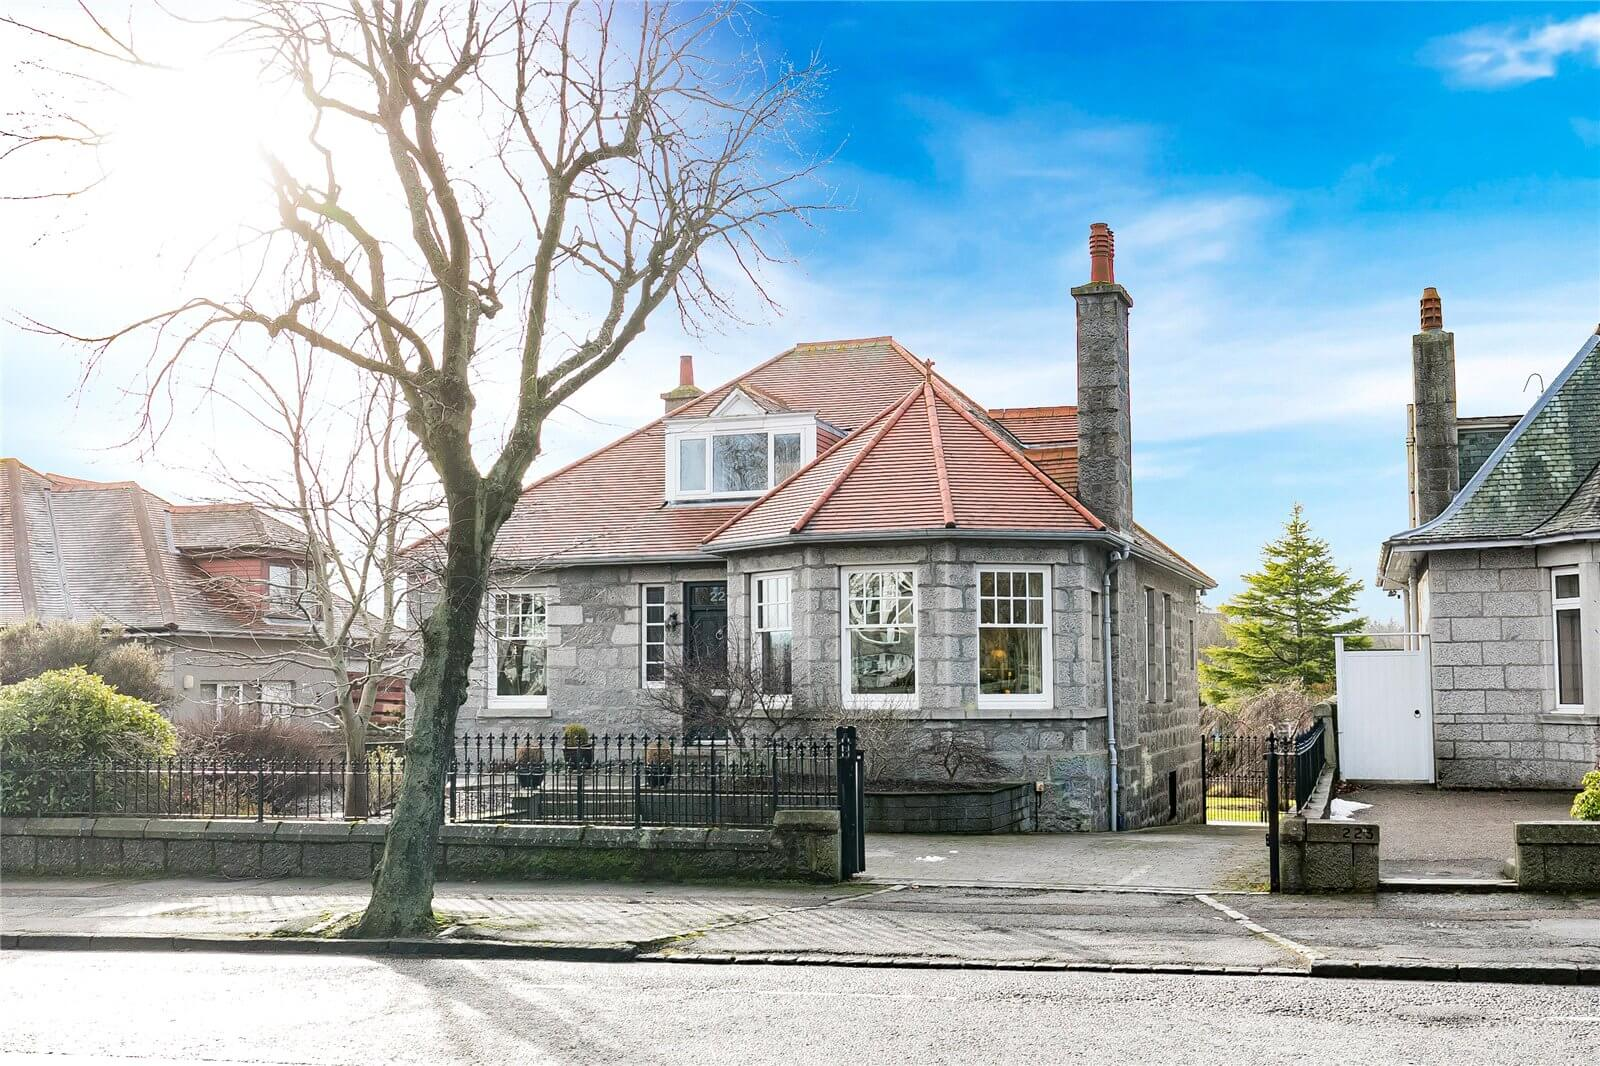 Luxury west end home coming soon to Aberdeen's property market